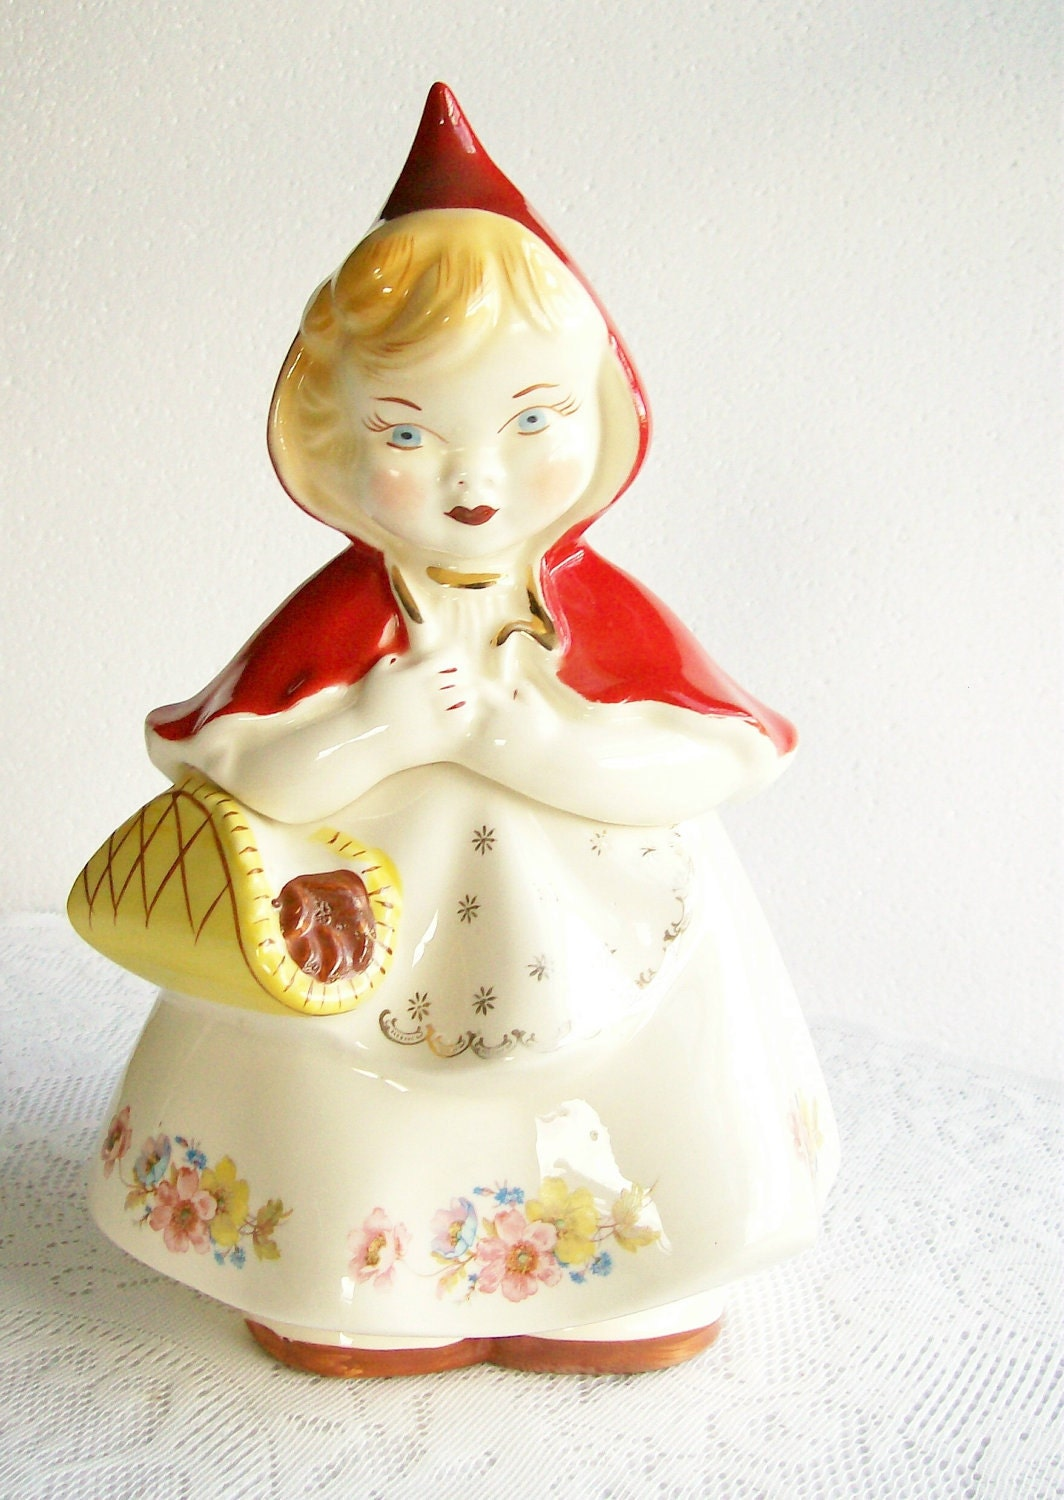 Cookie Jar Hull Little Red Riding Hood Vintage Pottery 1940s